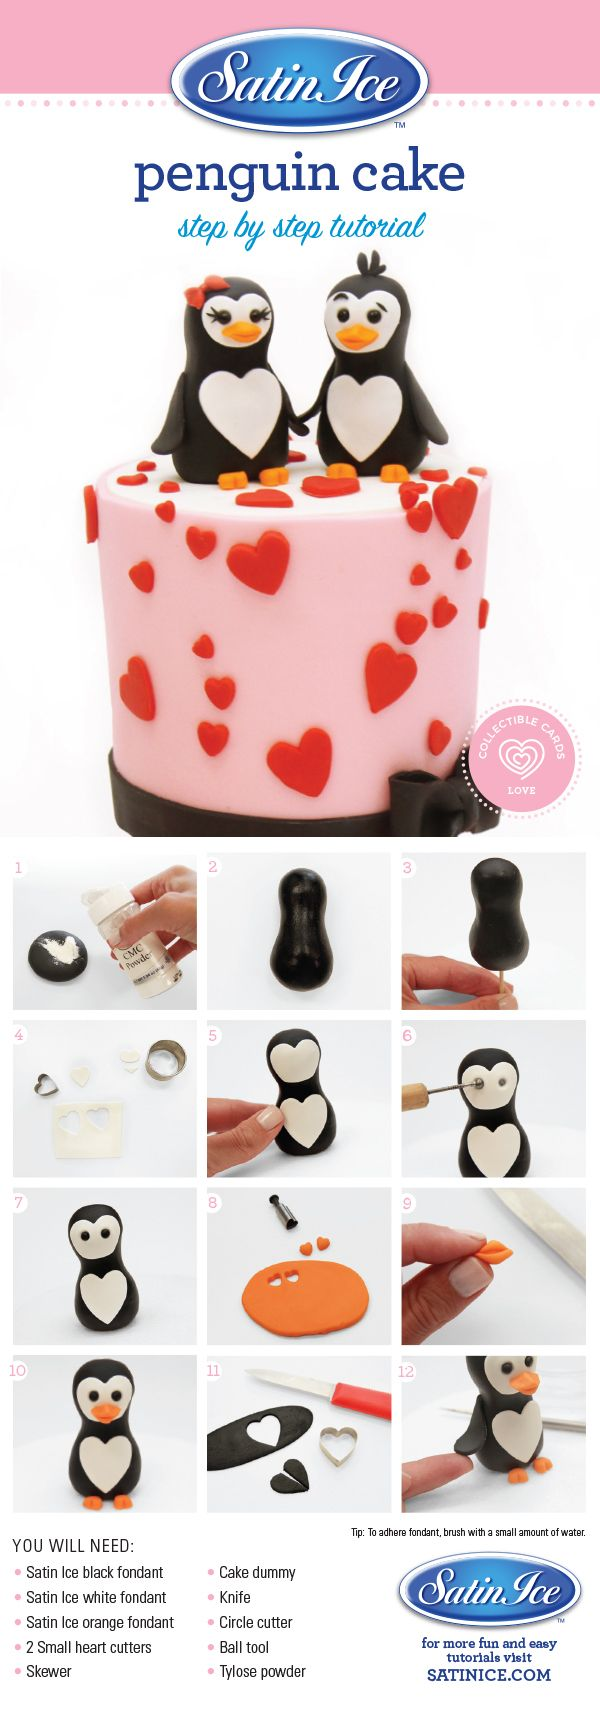 DIY fondant Penguins in Love by Satin Ice!